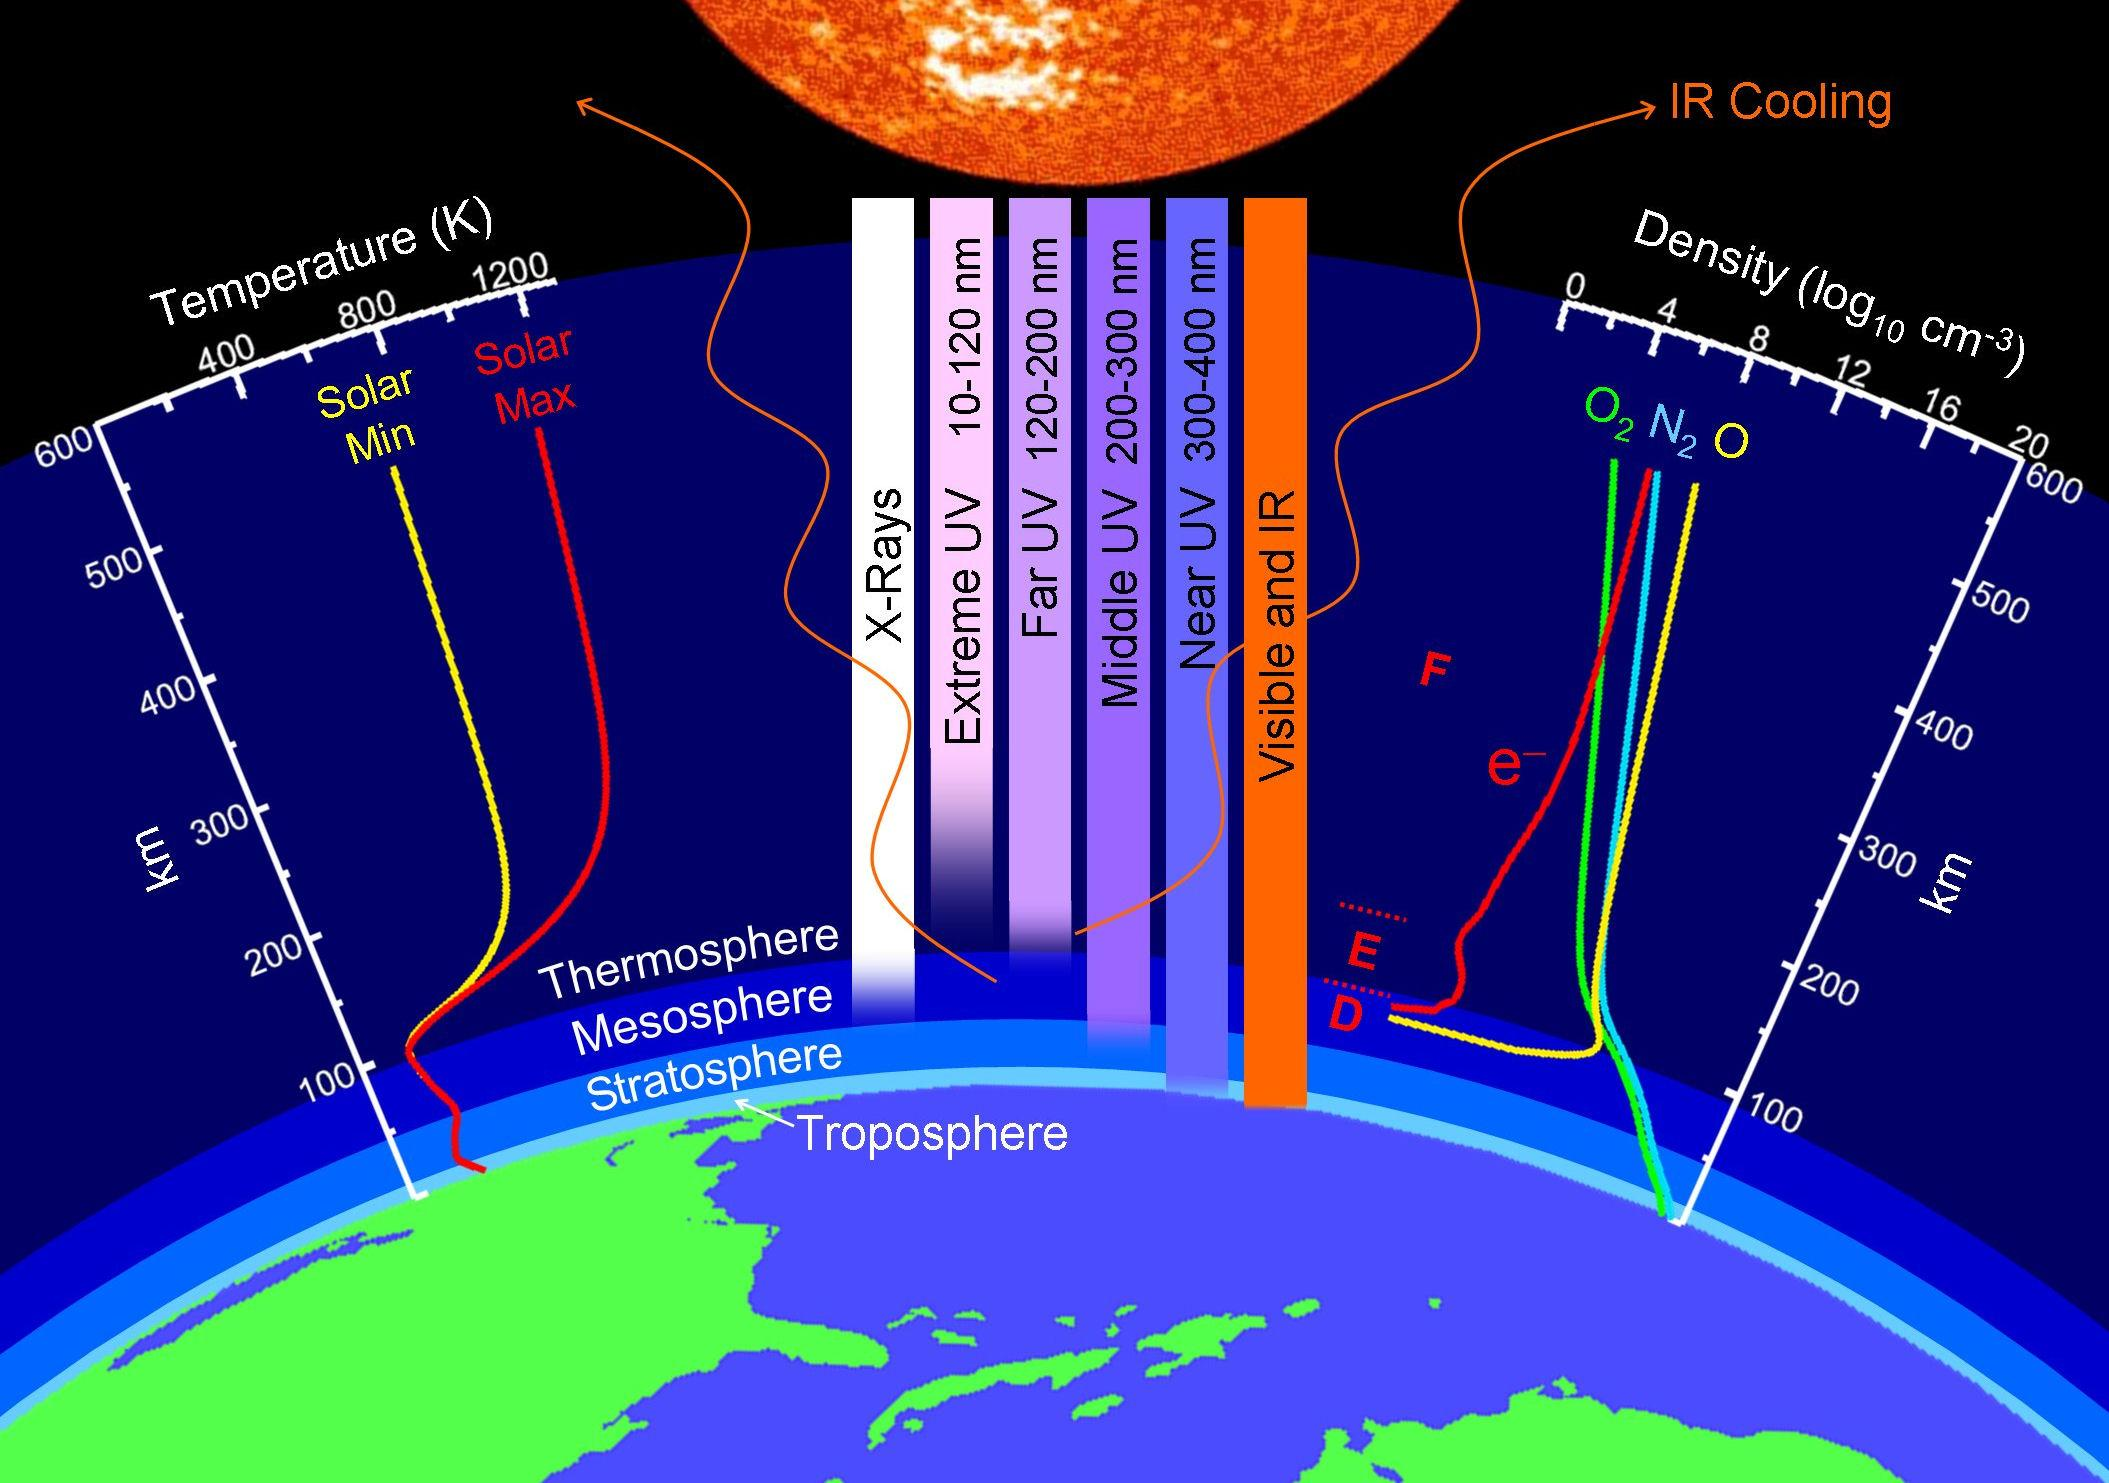 s sun layers diagram energy level for oxygen properties of earth 39s upper atmosphere nasa